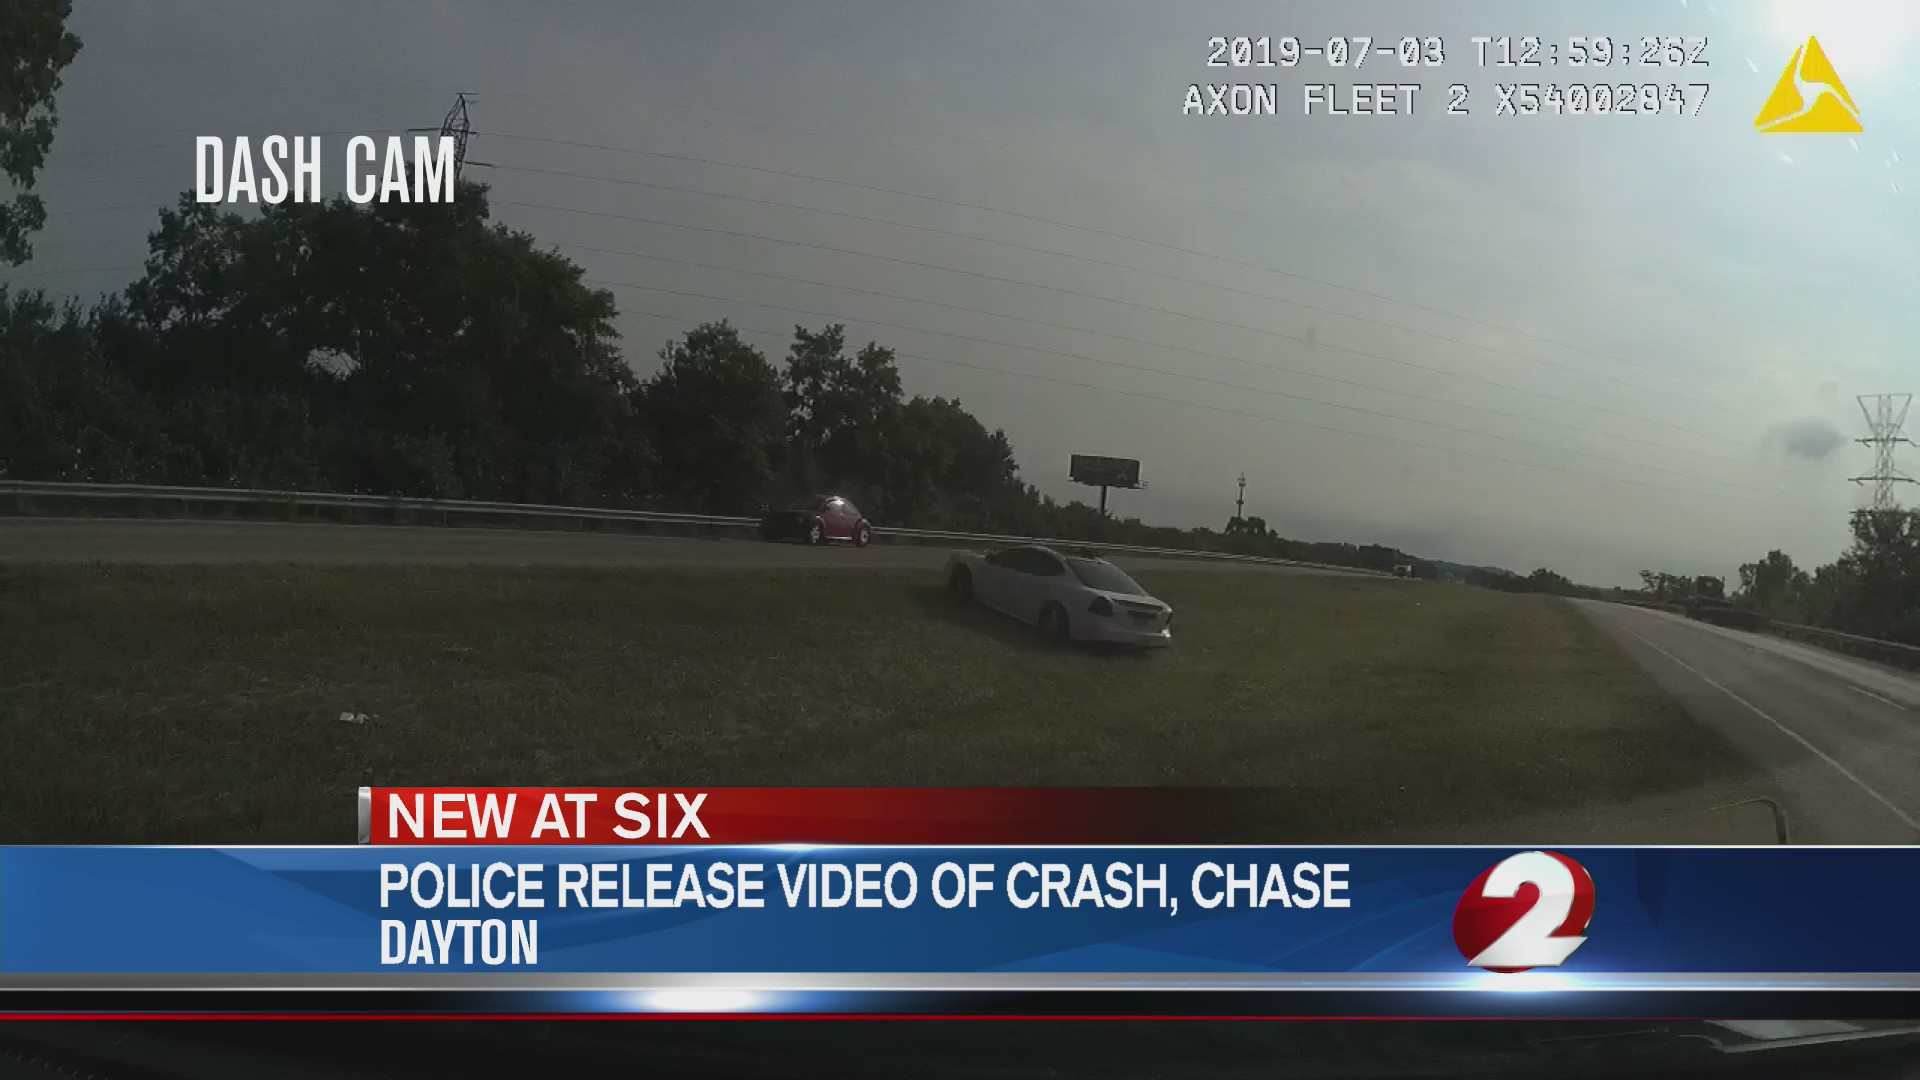 WATCH: Suspect runs from police after chase, crash | WDTN